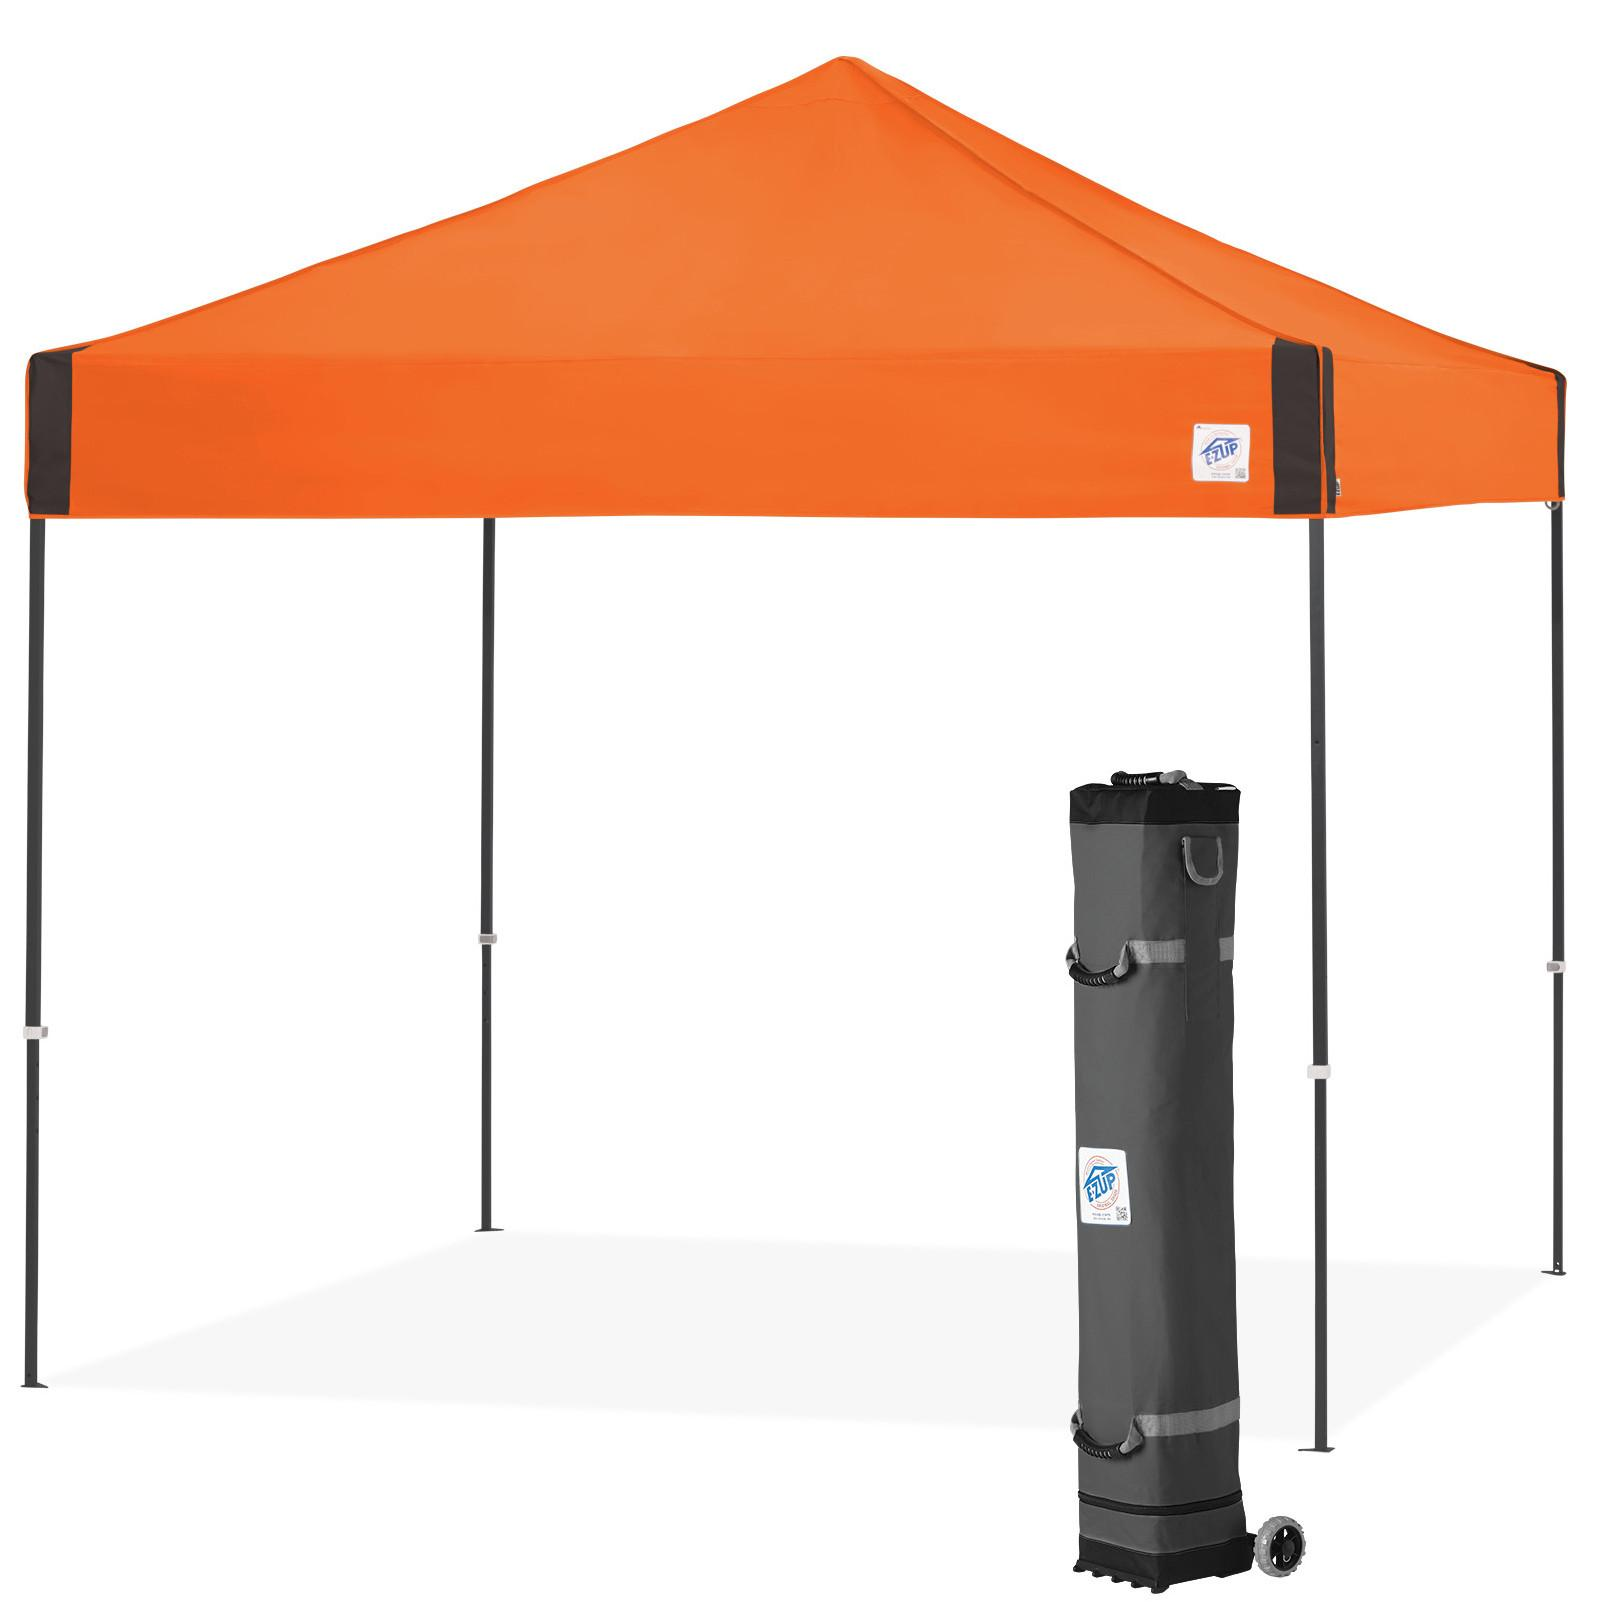 10x10 canopy beach canopy canopy red canopy e-z up ez up  sc 1 st  Amazon.com & Amazon.com : E-Z UP Pyramid Instant Shelter Canopy 10 by 10 ...